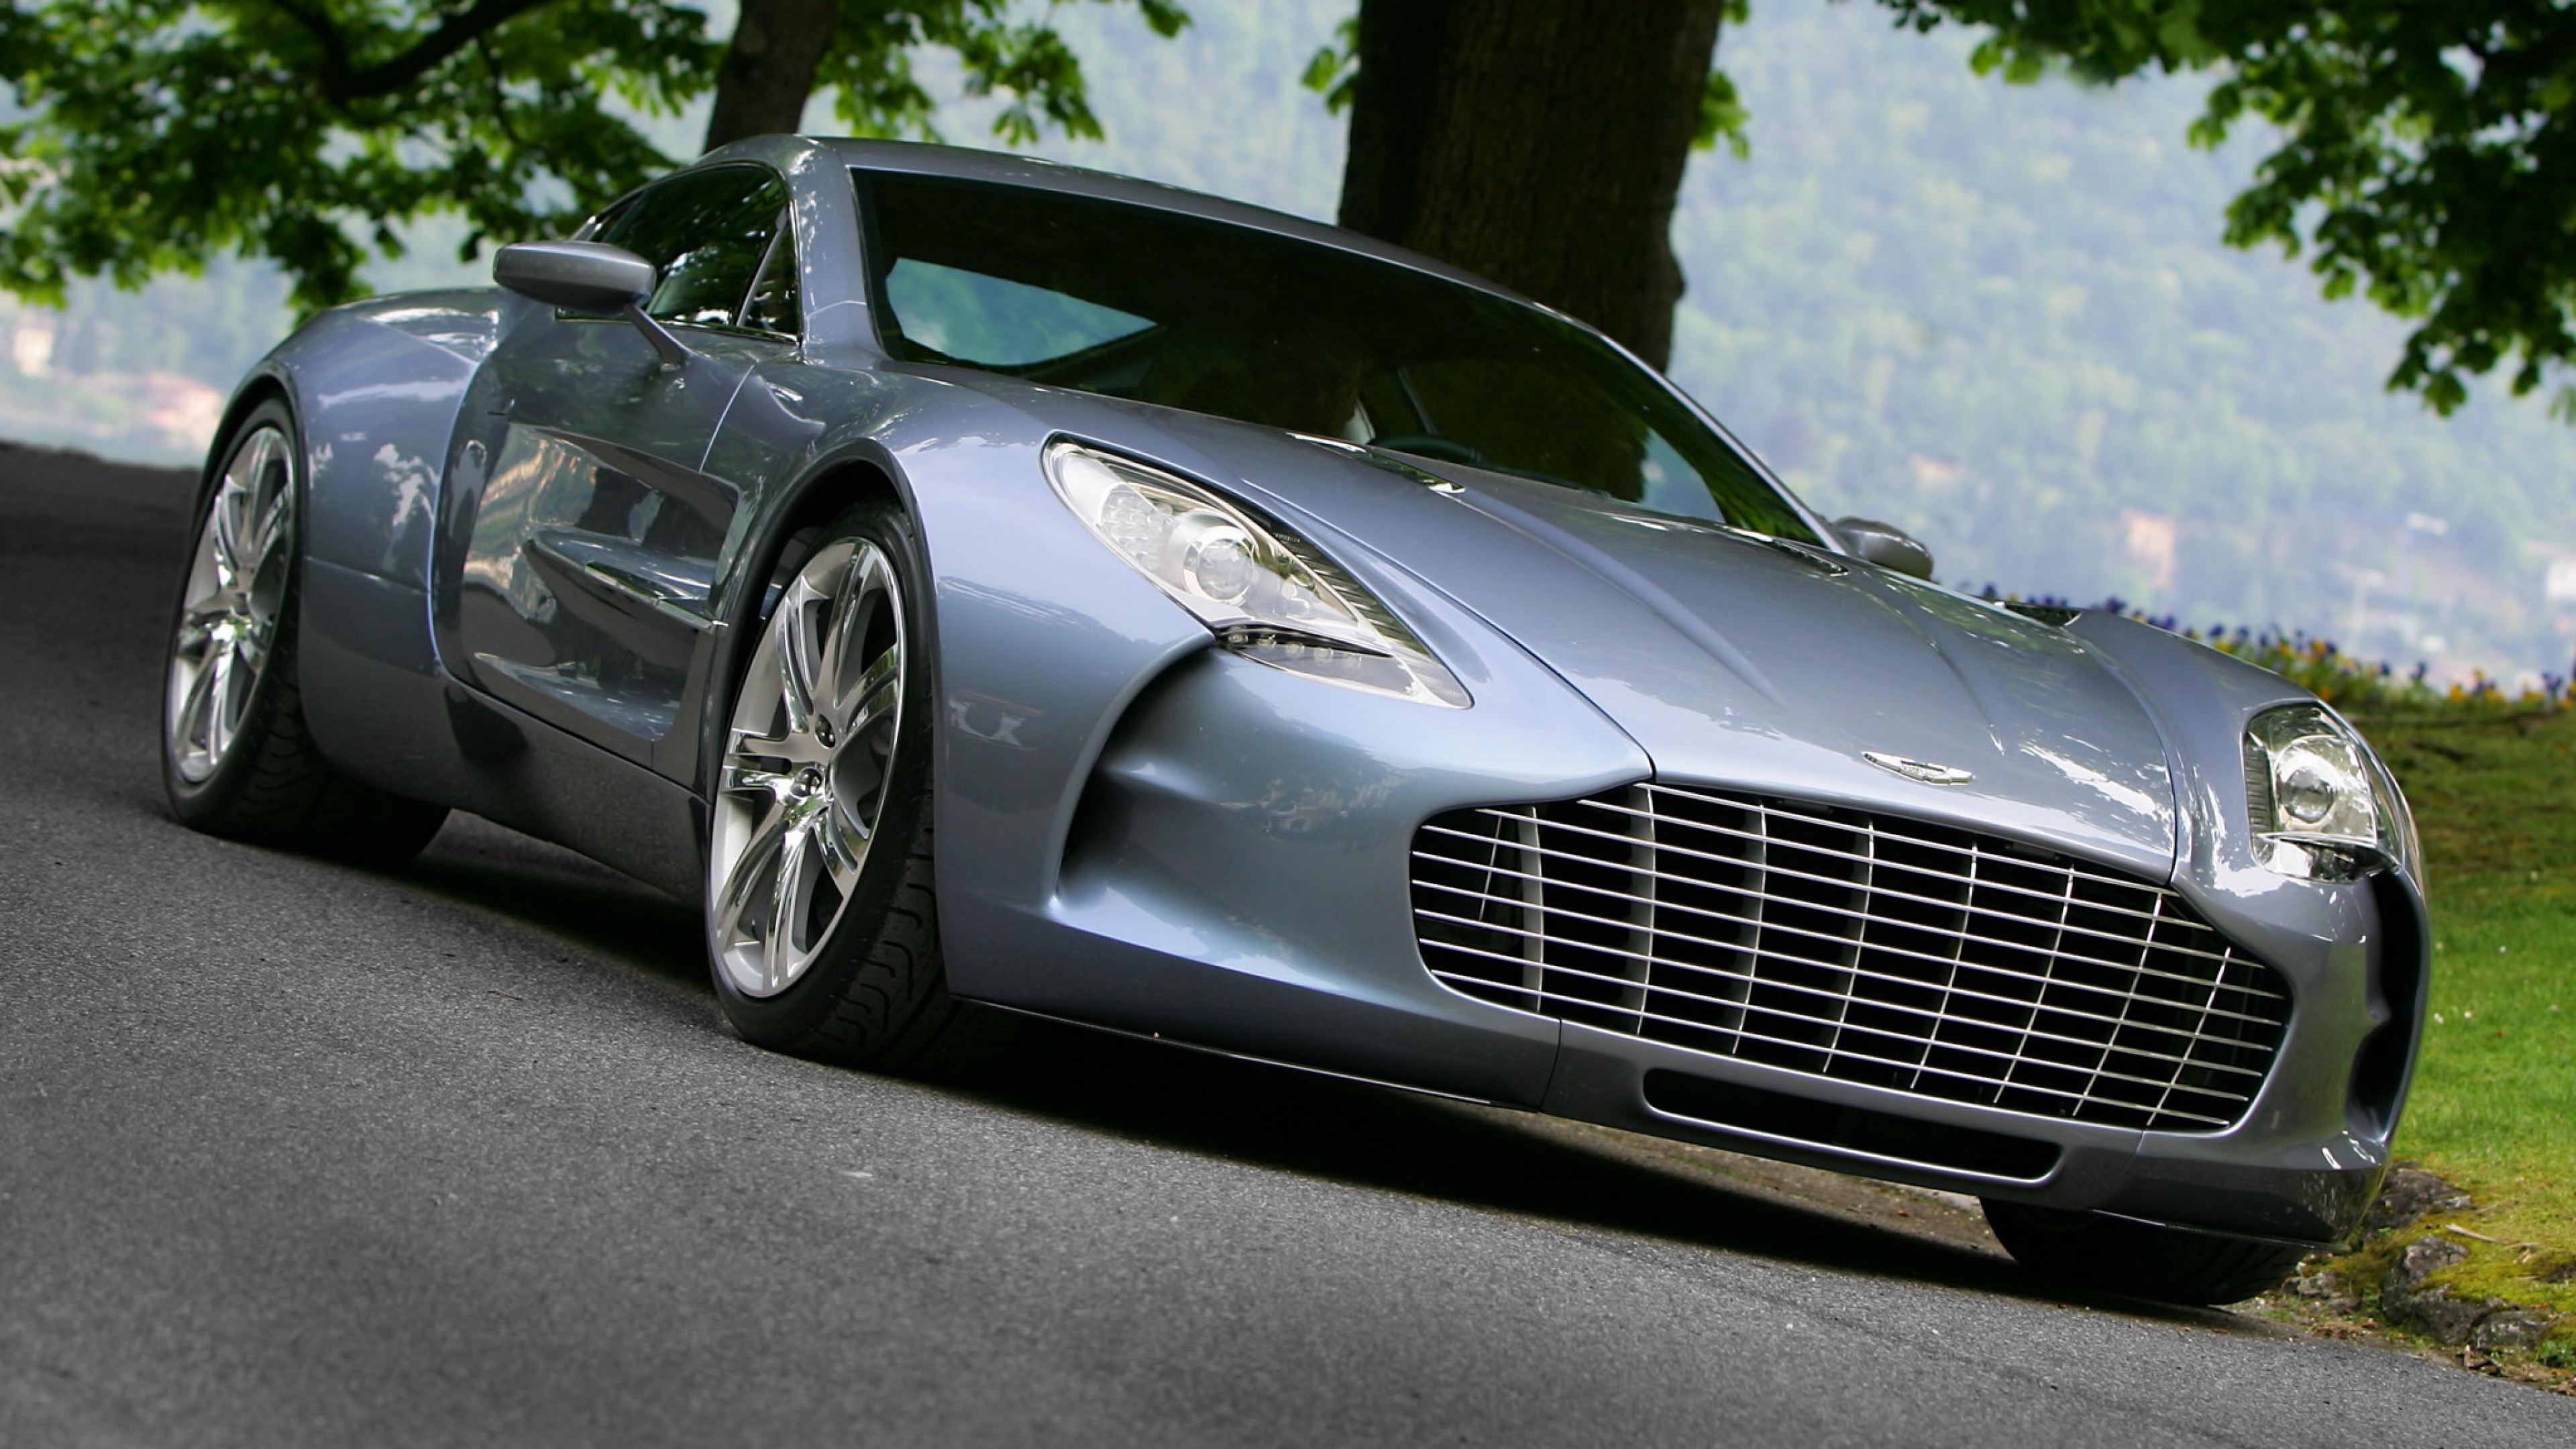 Download Wallpaper 3840x2160 aston martin one 77 2009 blue front 3840x2160